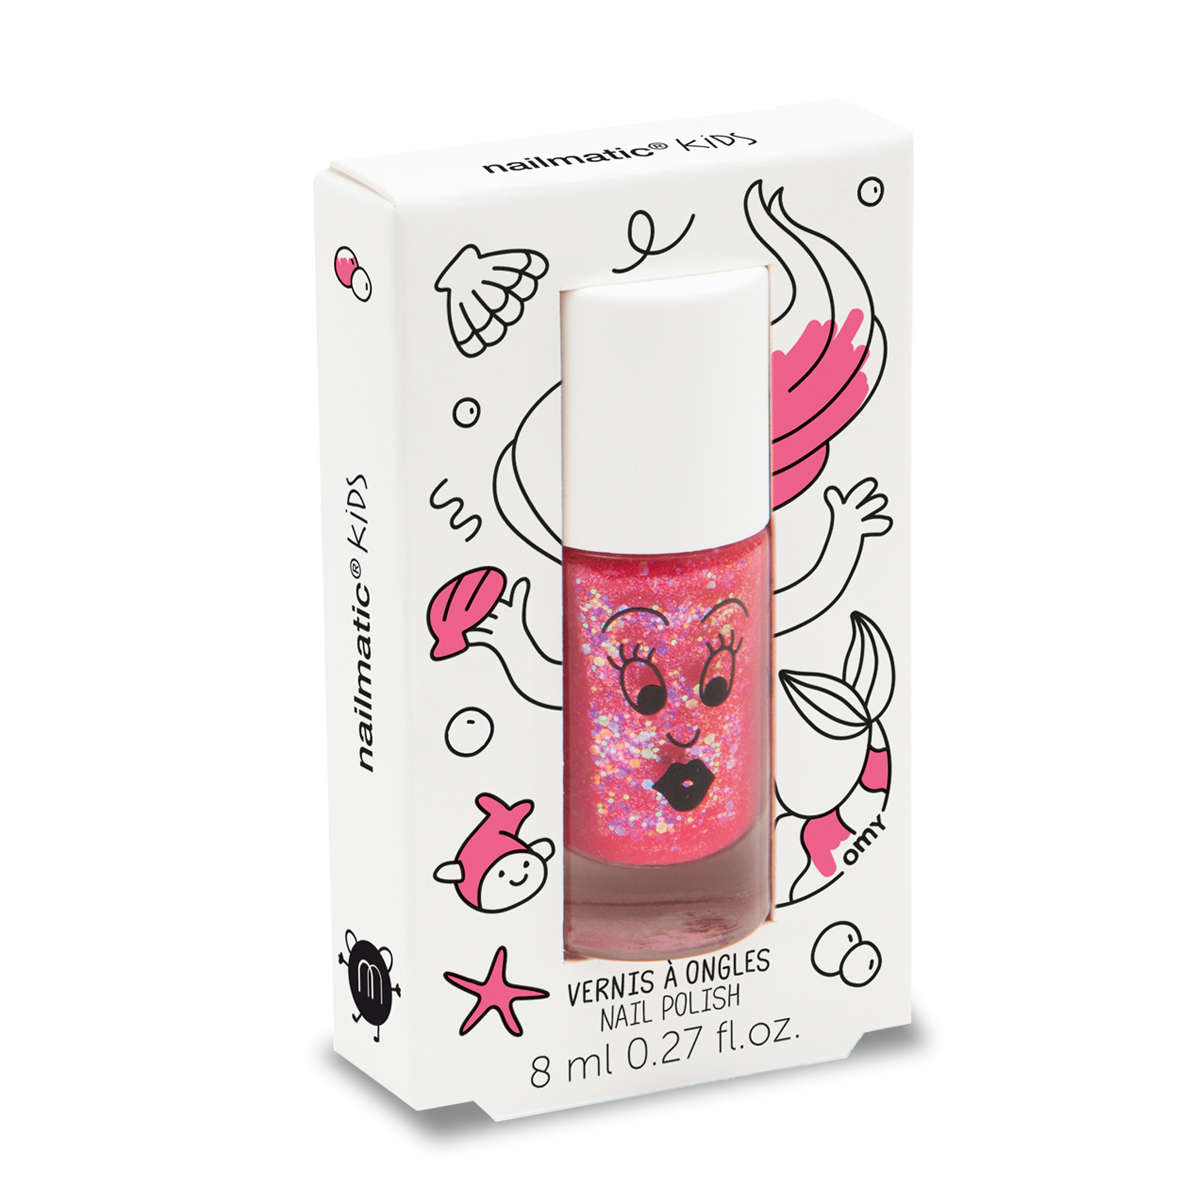 Sissi Pink Glittery Water-based Nail Polish for Kids